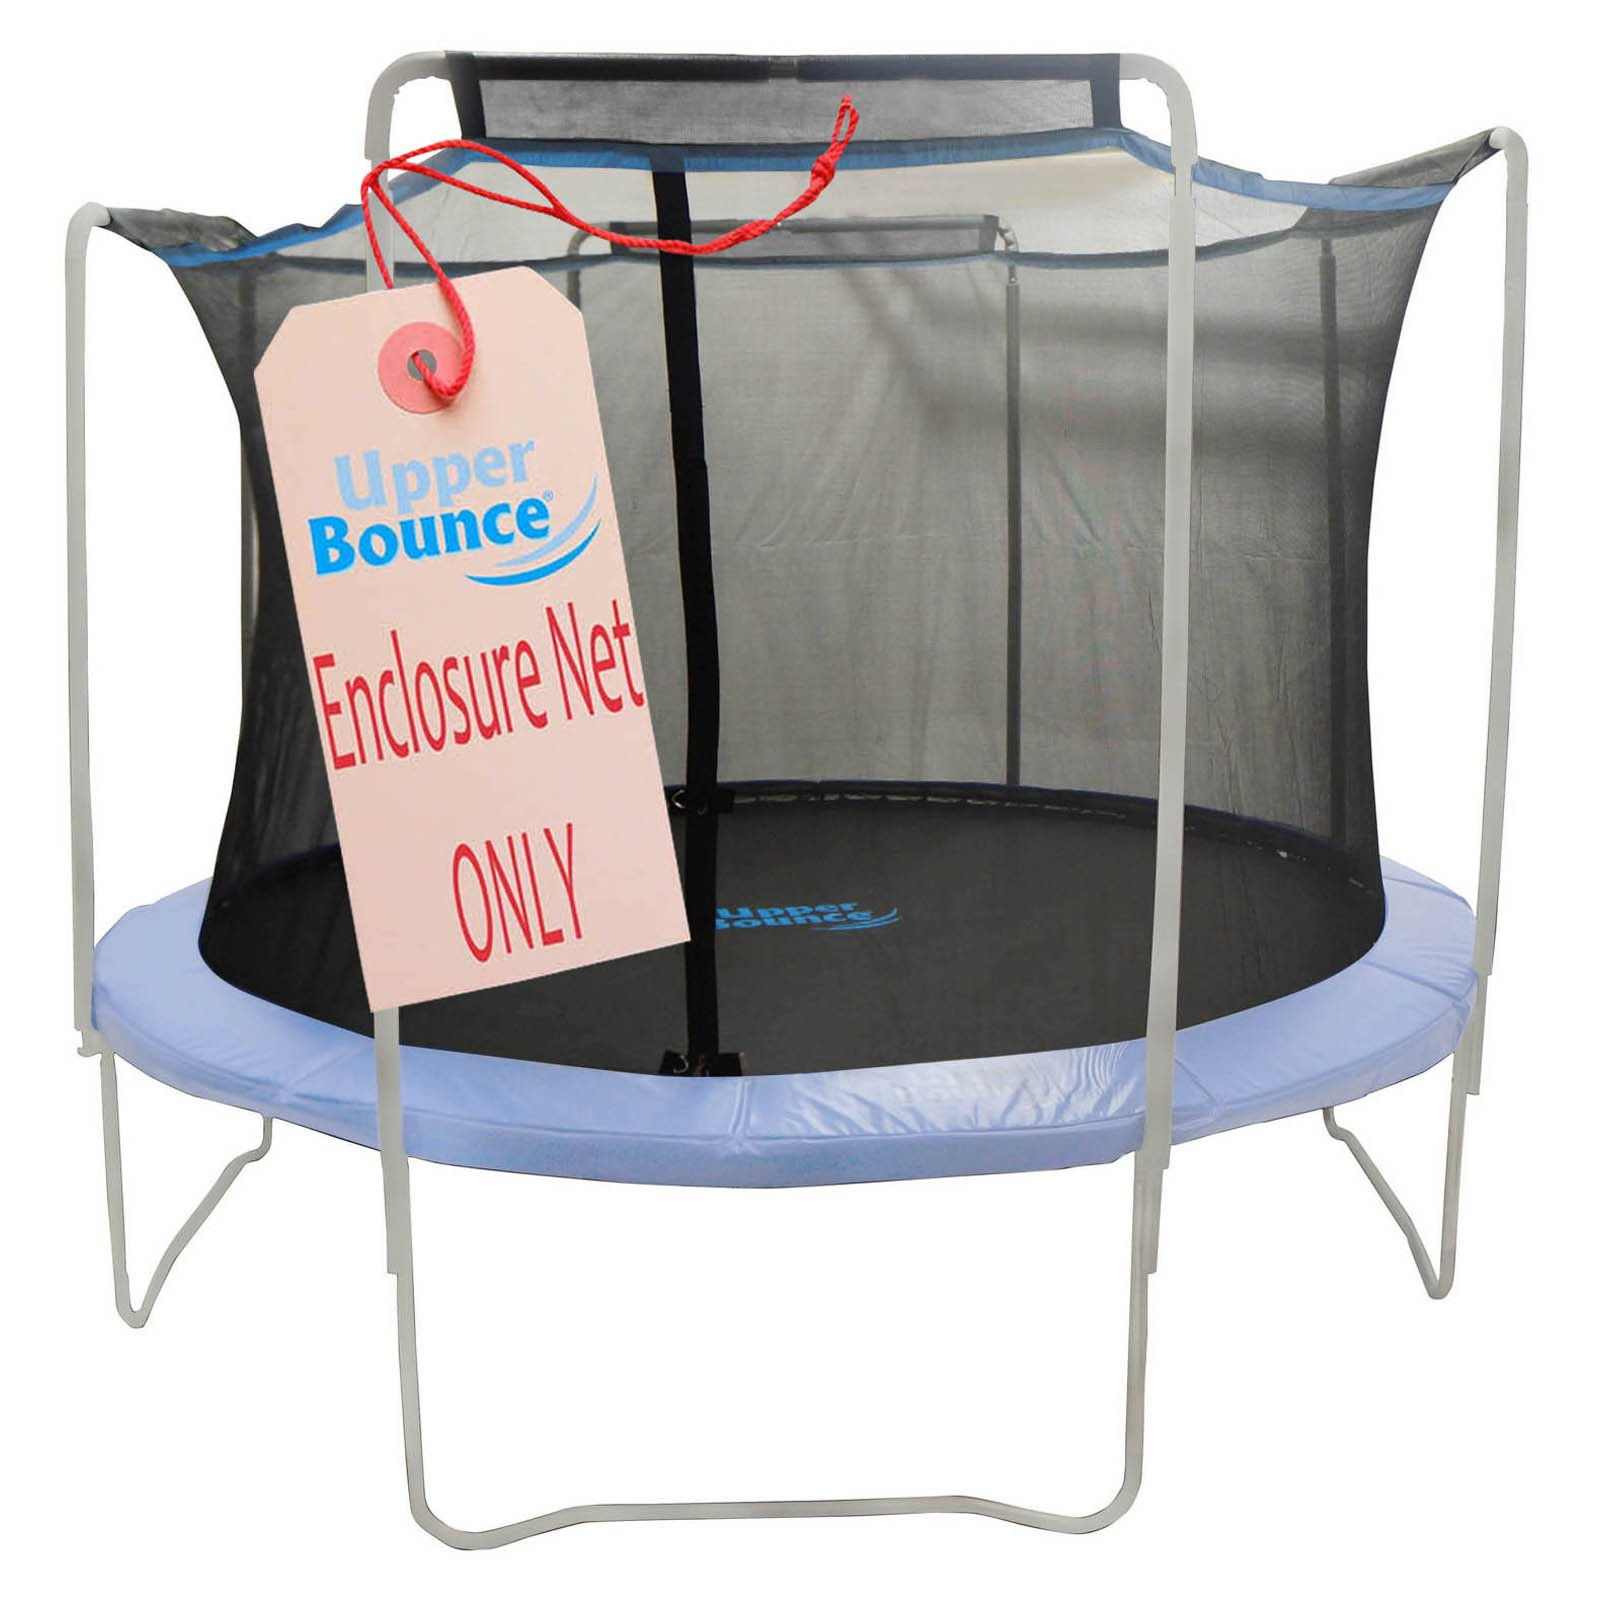 Upper Bounce 15 ft. Trampoline Enclosure Net Fit for Arches